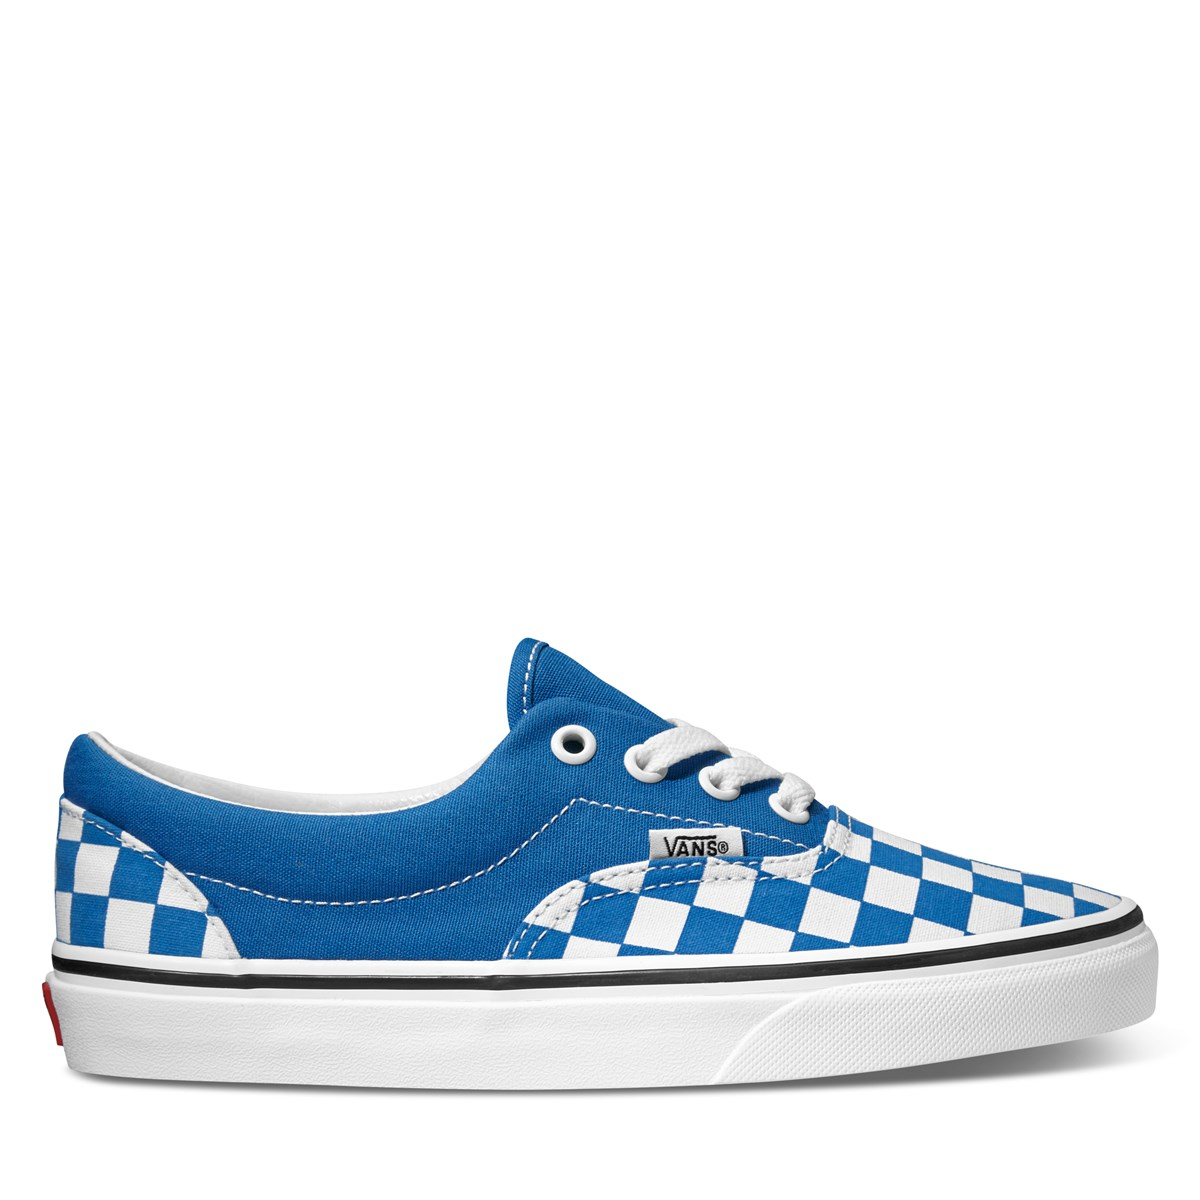 Women's Era Sneakers in Blue Checkerboard